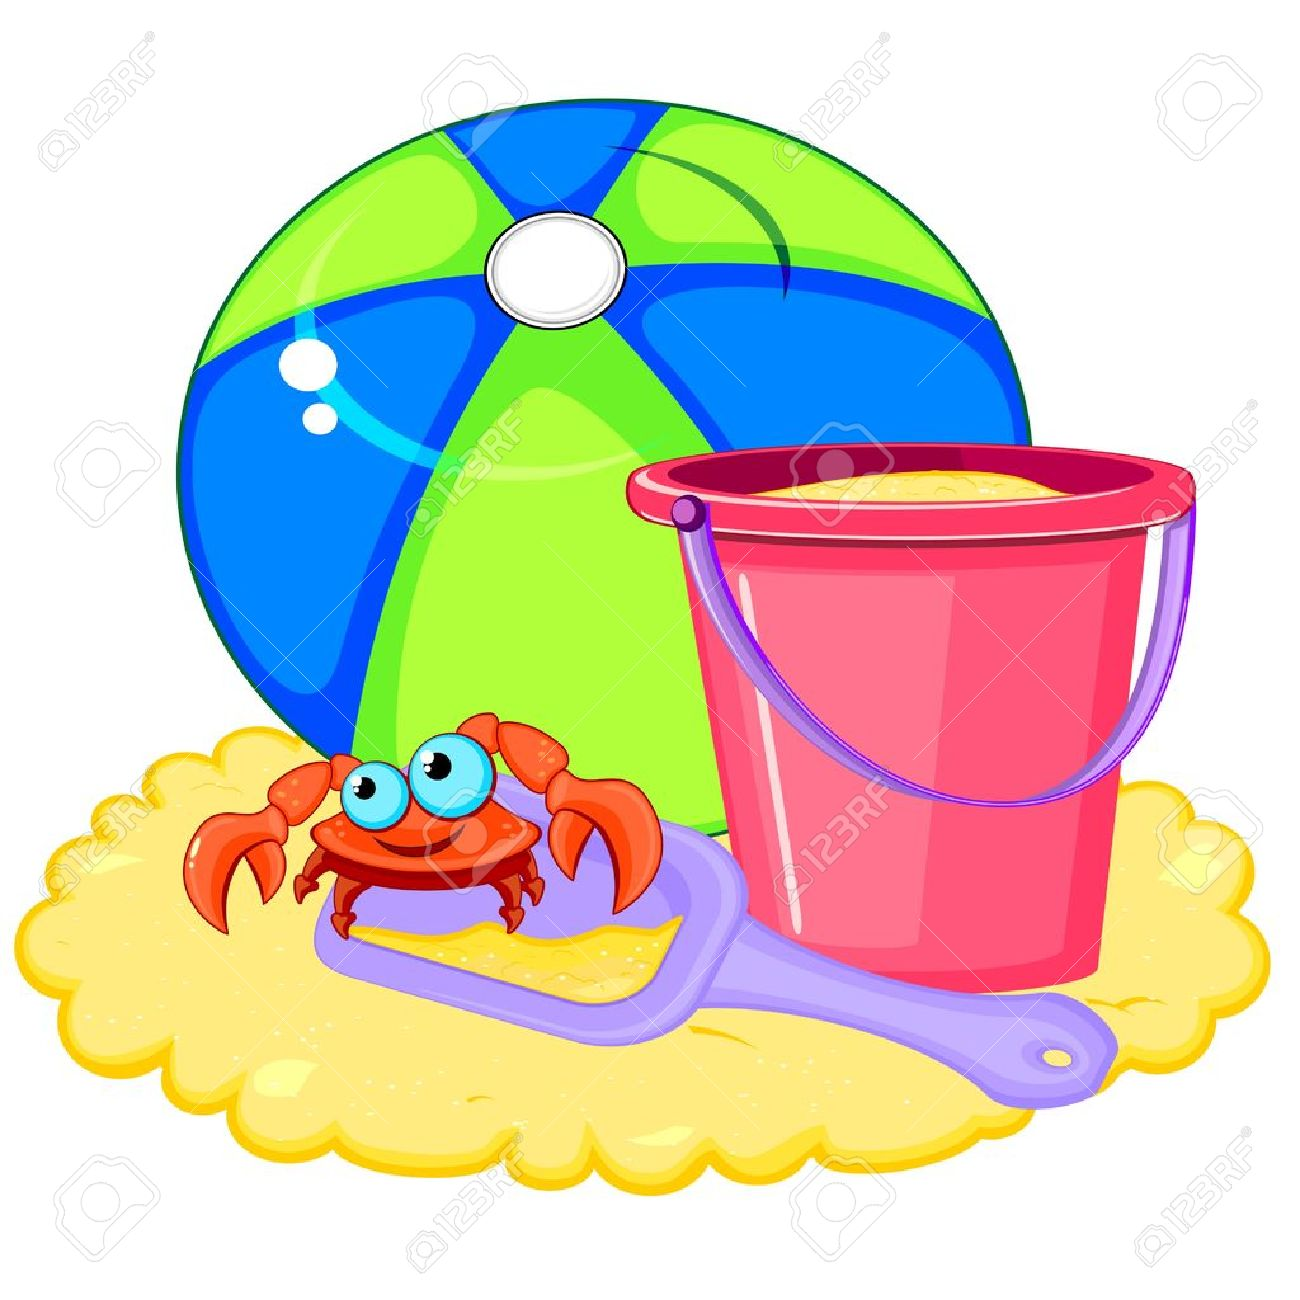 Bright beach ball and pink bucket with shovel and crab on sand.